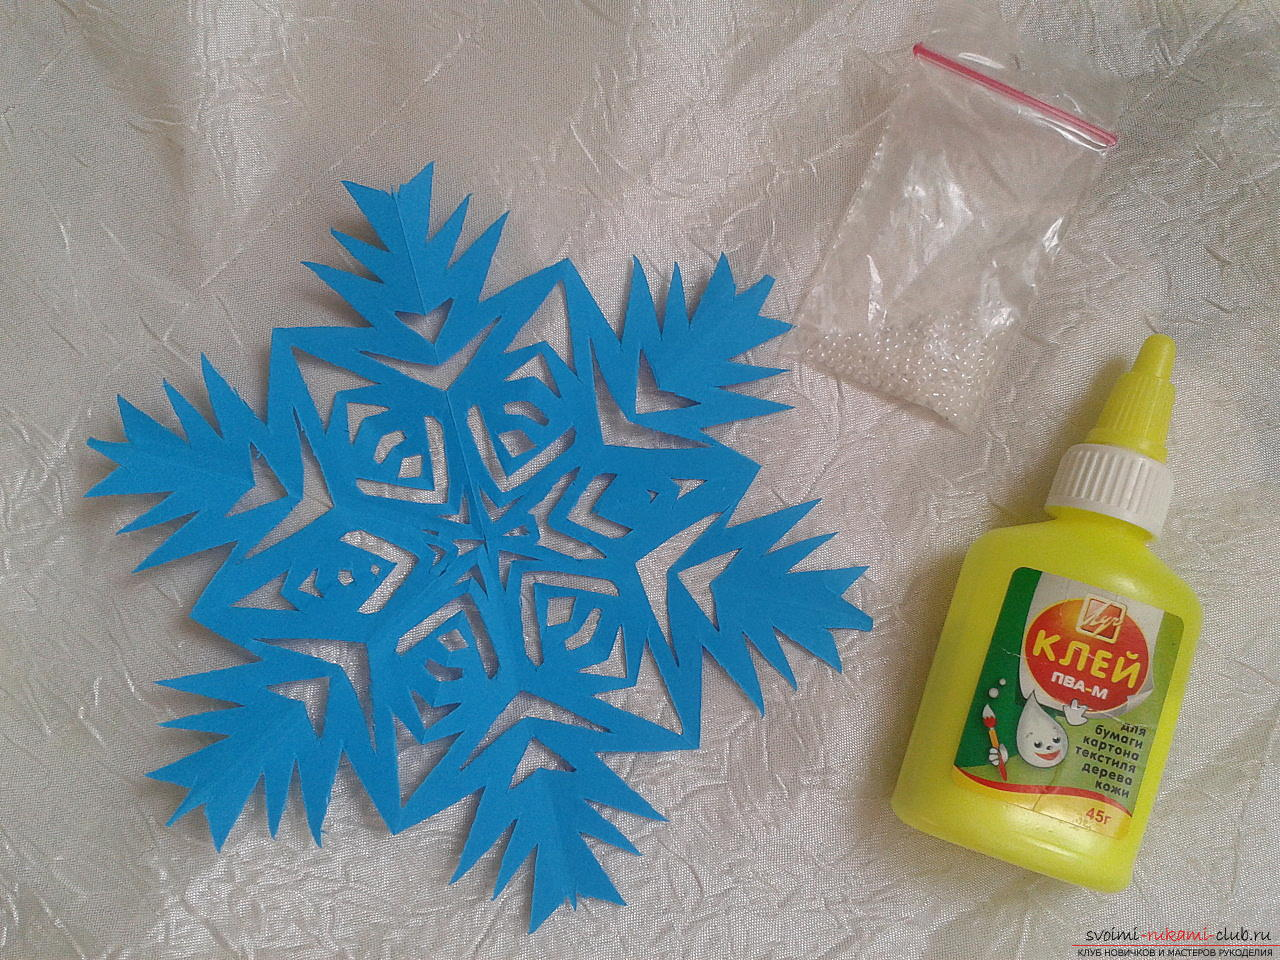 Photo to the lesson on creating a New Year's paper snowflake. Photo №13